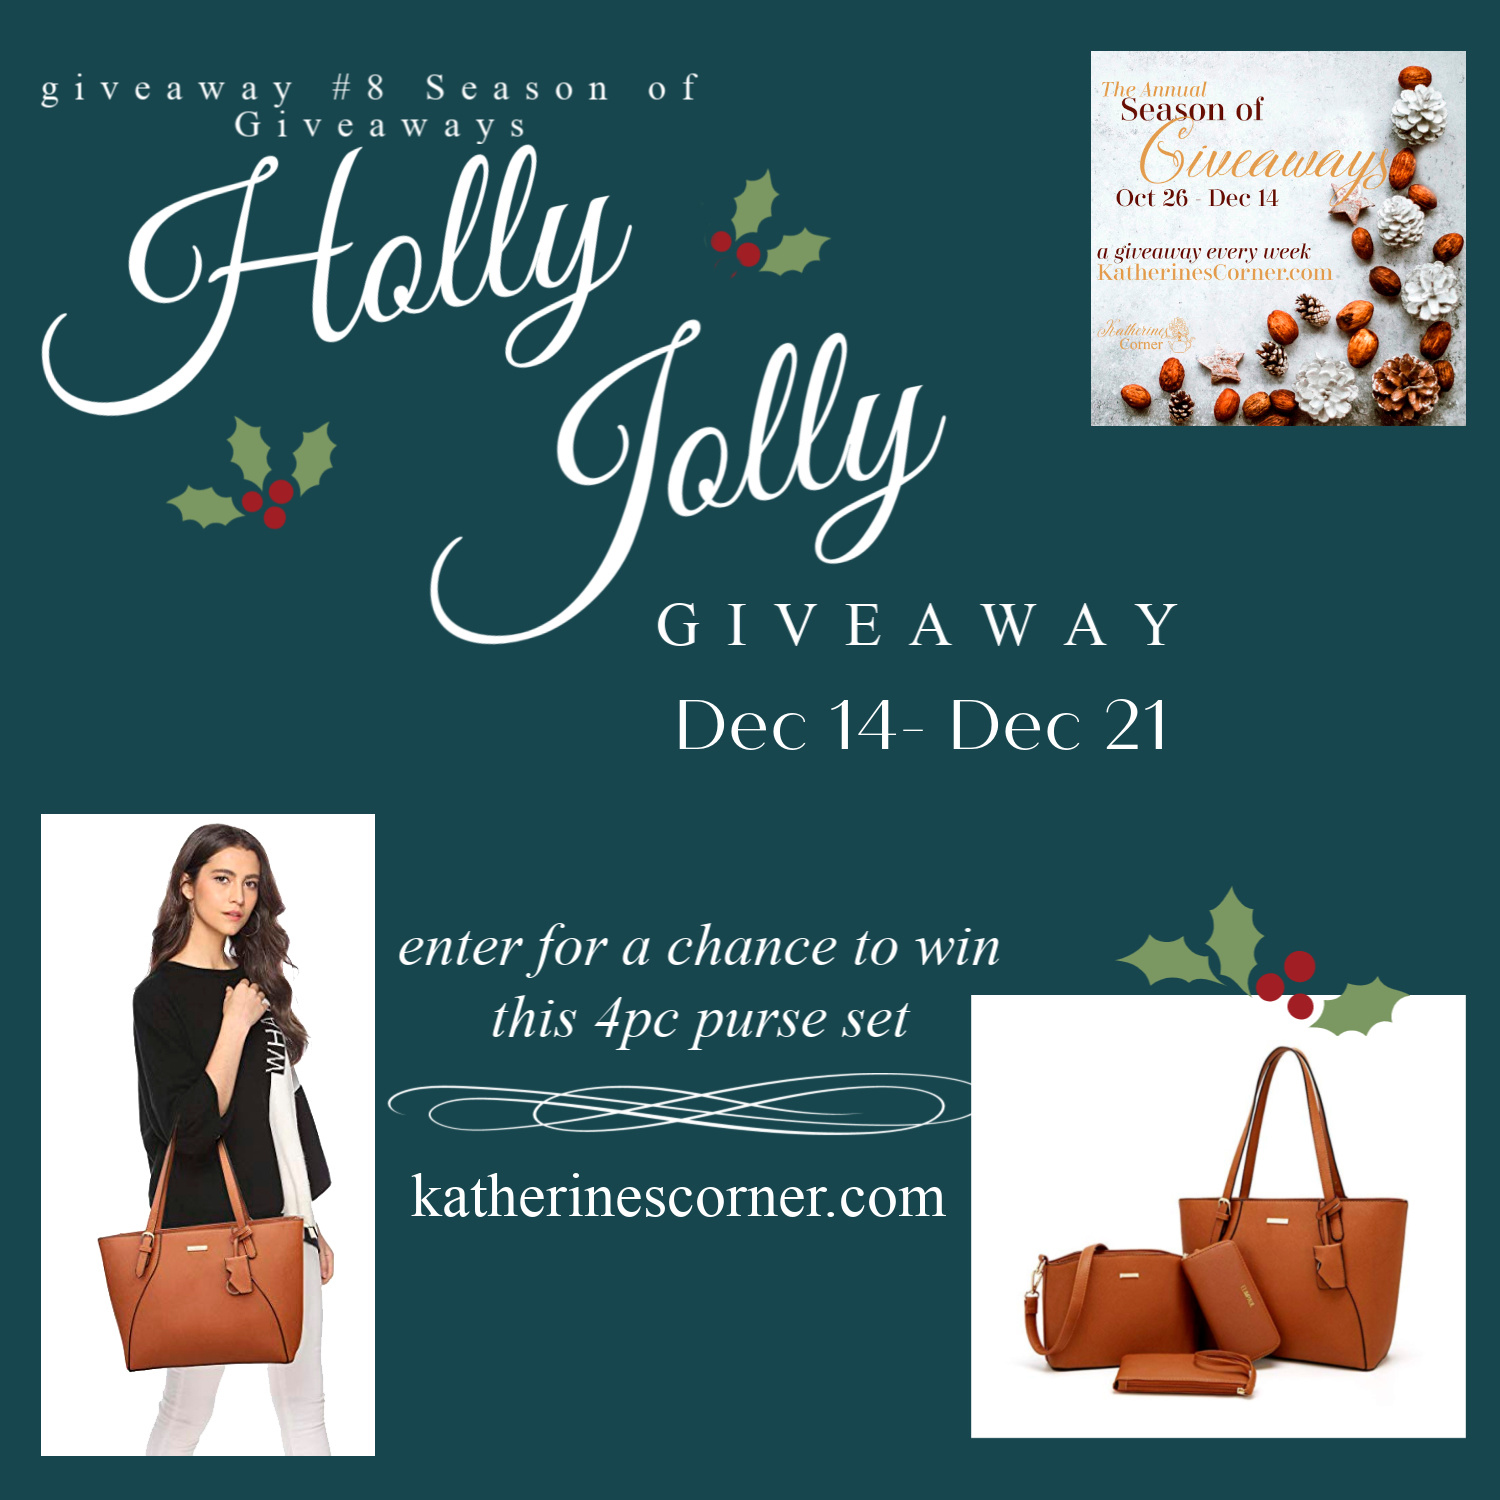 Season of Giveaways Holly Jolly Giveaway